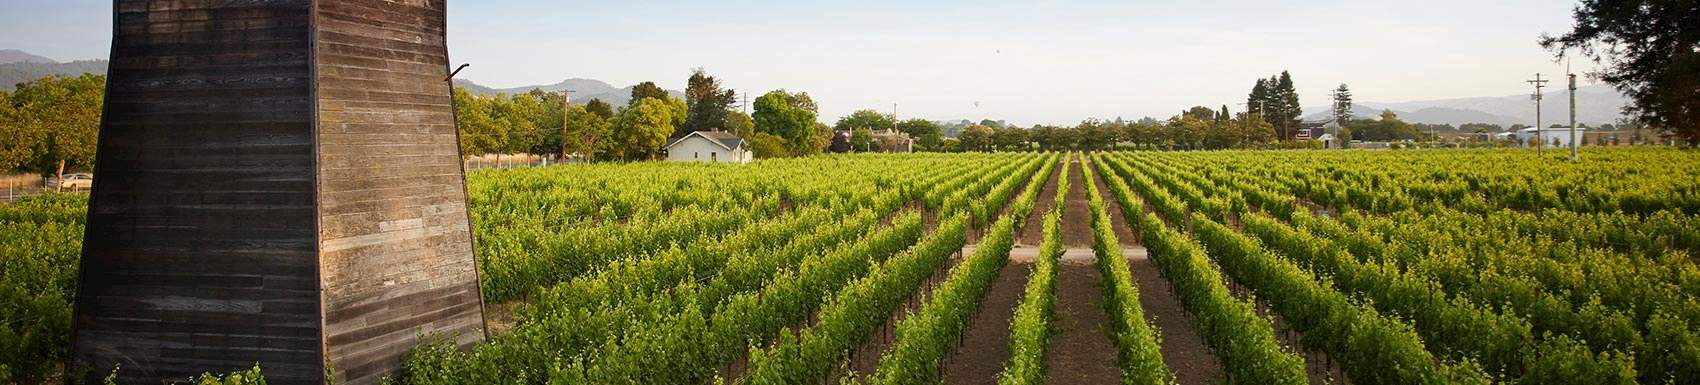 Know about SENZA Hotel, Napa